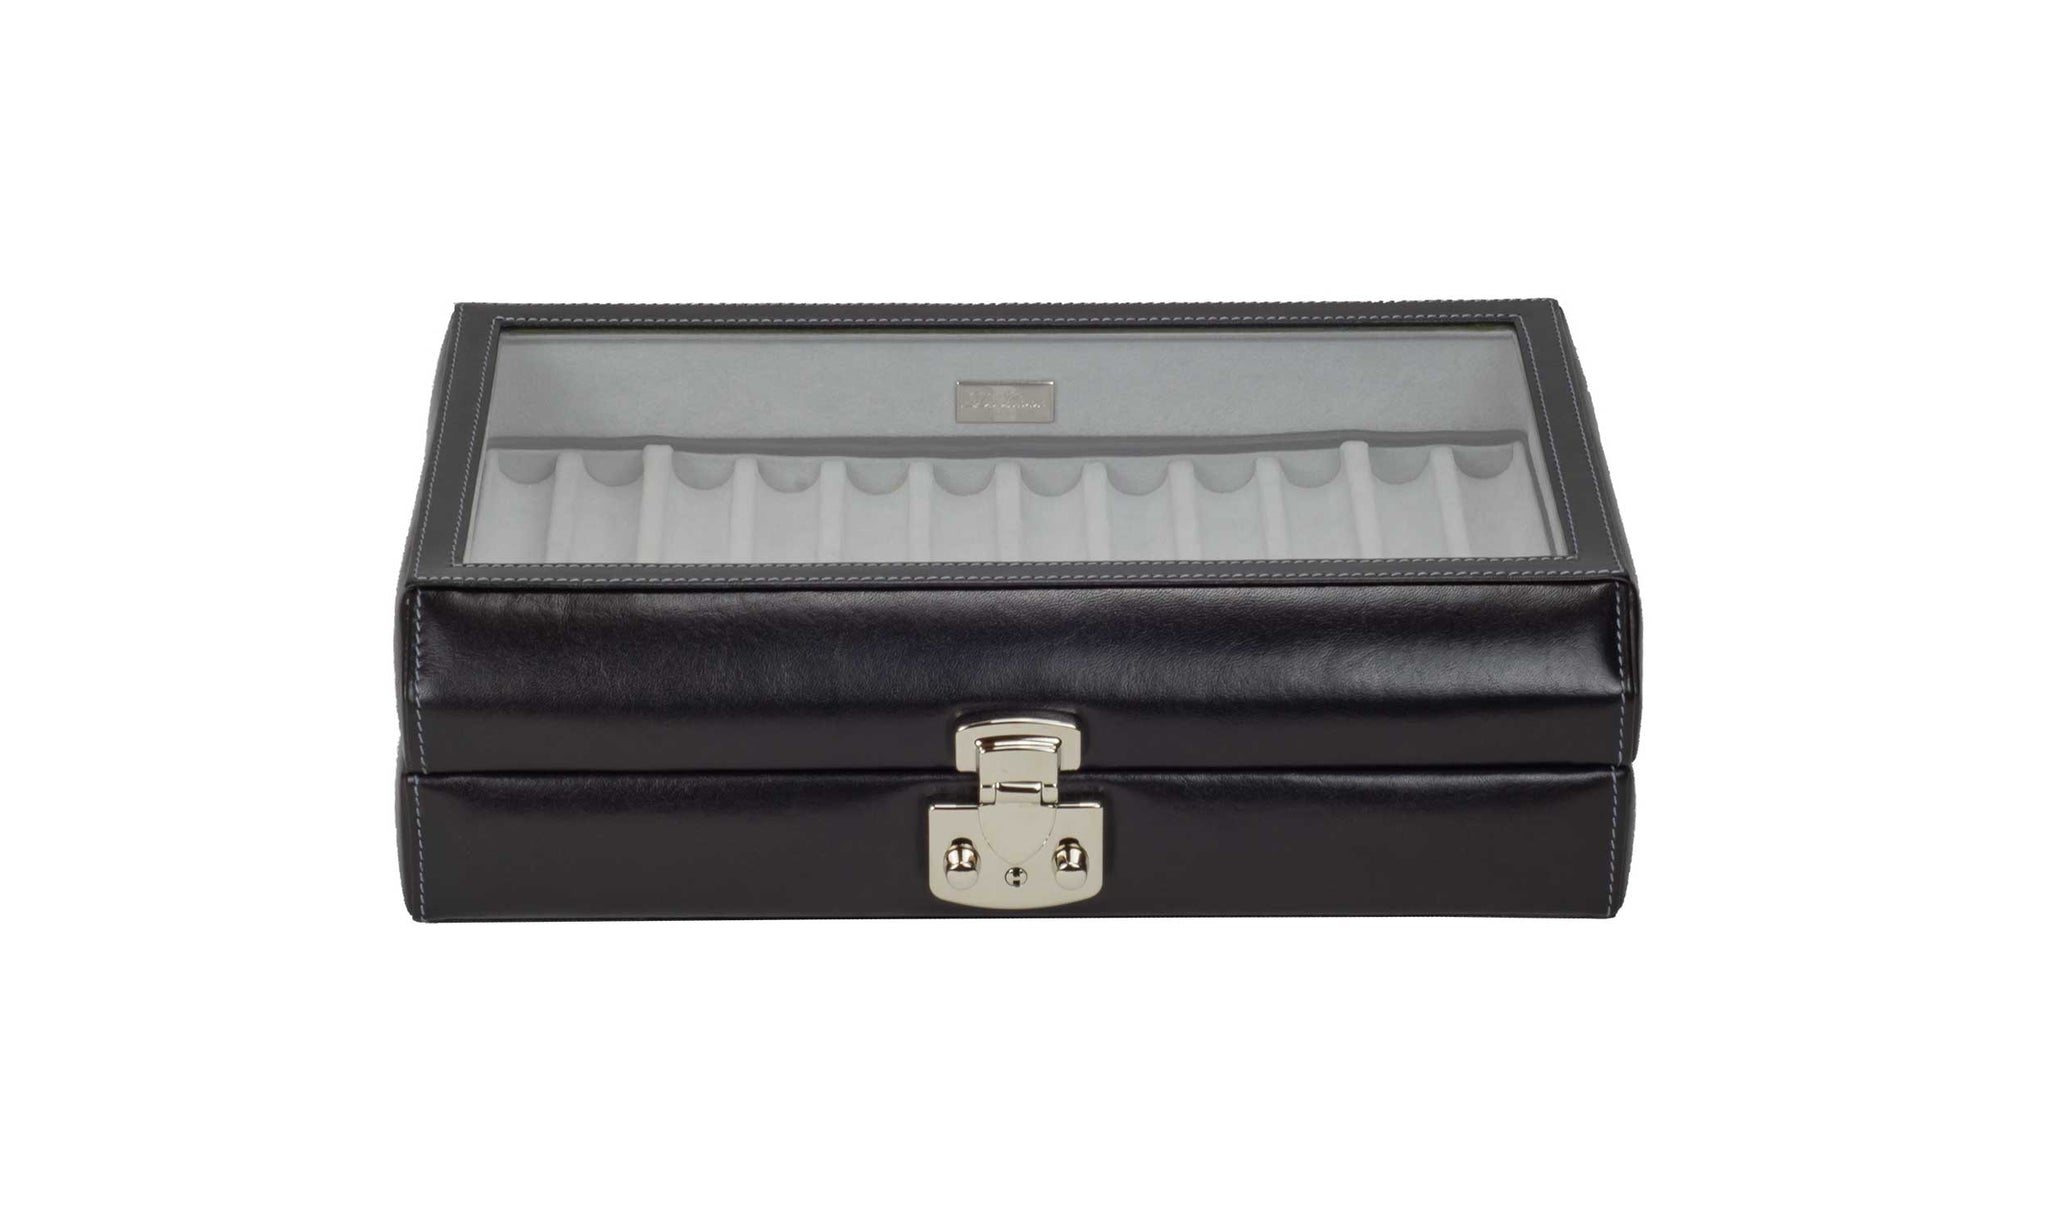 DiLoro Italian Leather 24 Pen Case Display Holder in Midnight Black - Front View